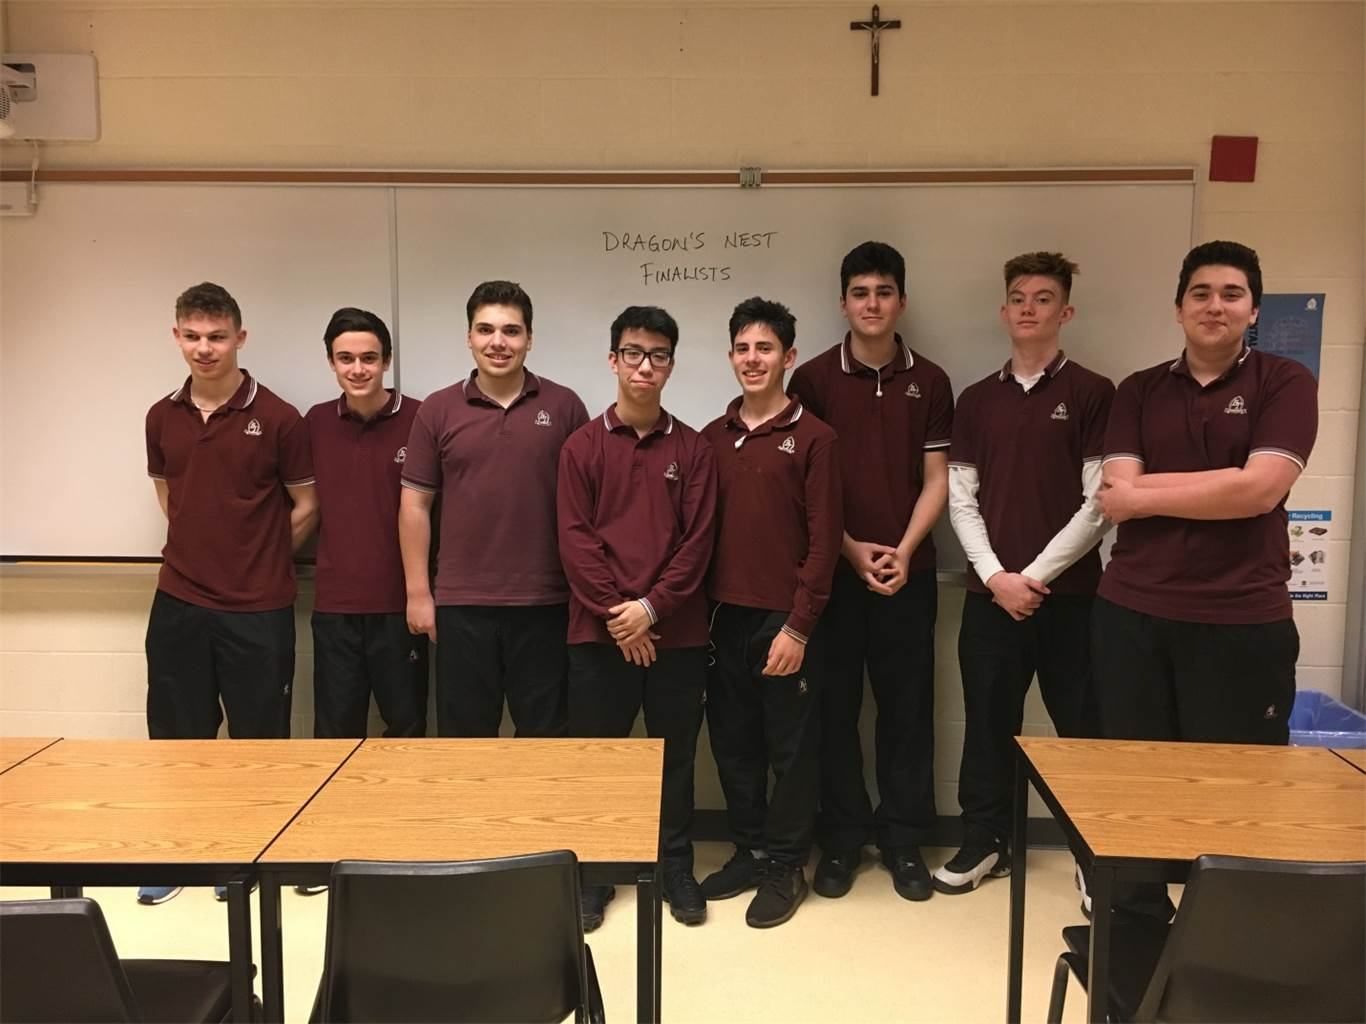 BT finalists from the Video Pitch Submissions. From left: JP Parente, Matthew Fticar, Julian Lombardi, Casey Gillis, Luke Del Cantero, Connor Lynch, Lucas Branch, and Sommer Martire. Photo courtesy of Gelsomina Riverso-Casella.